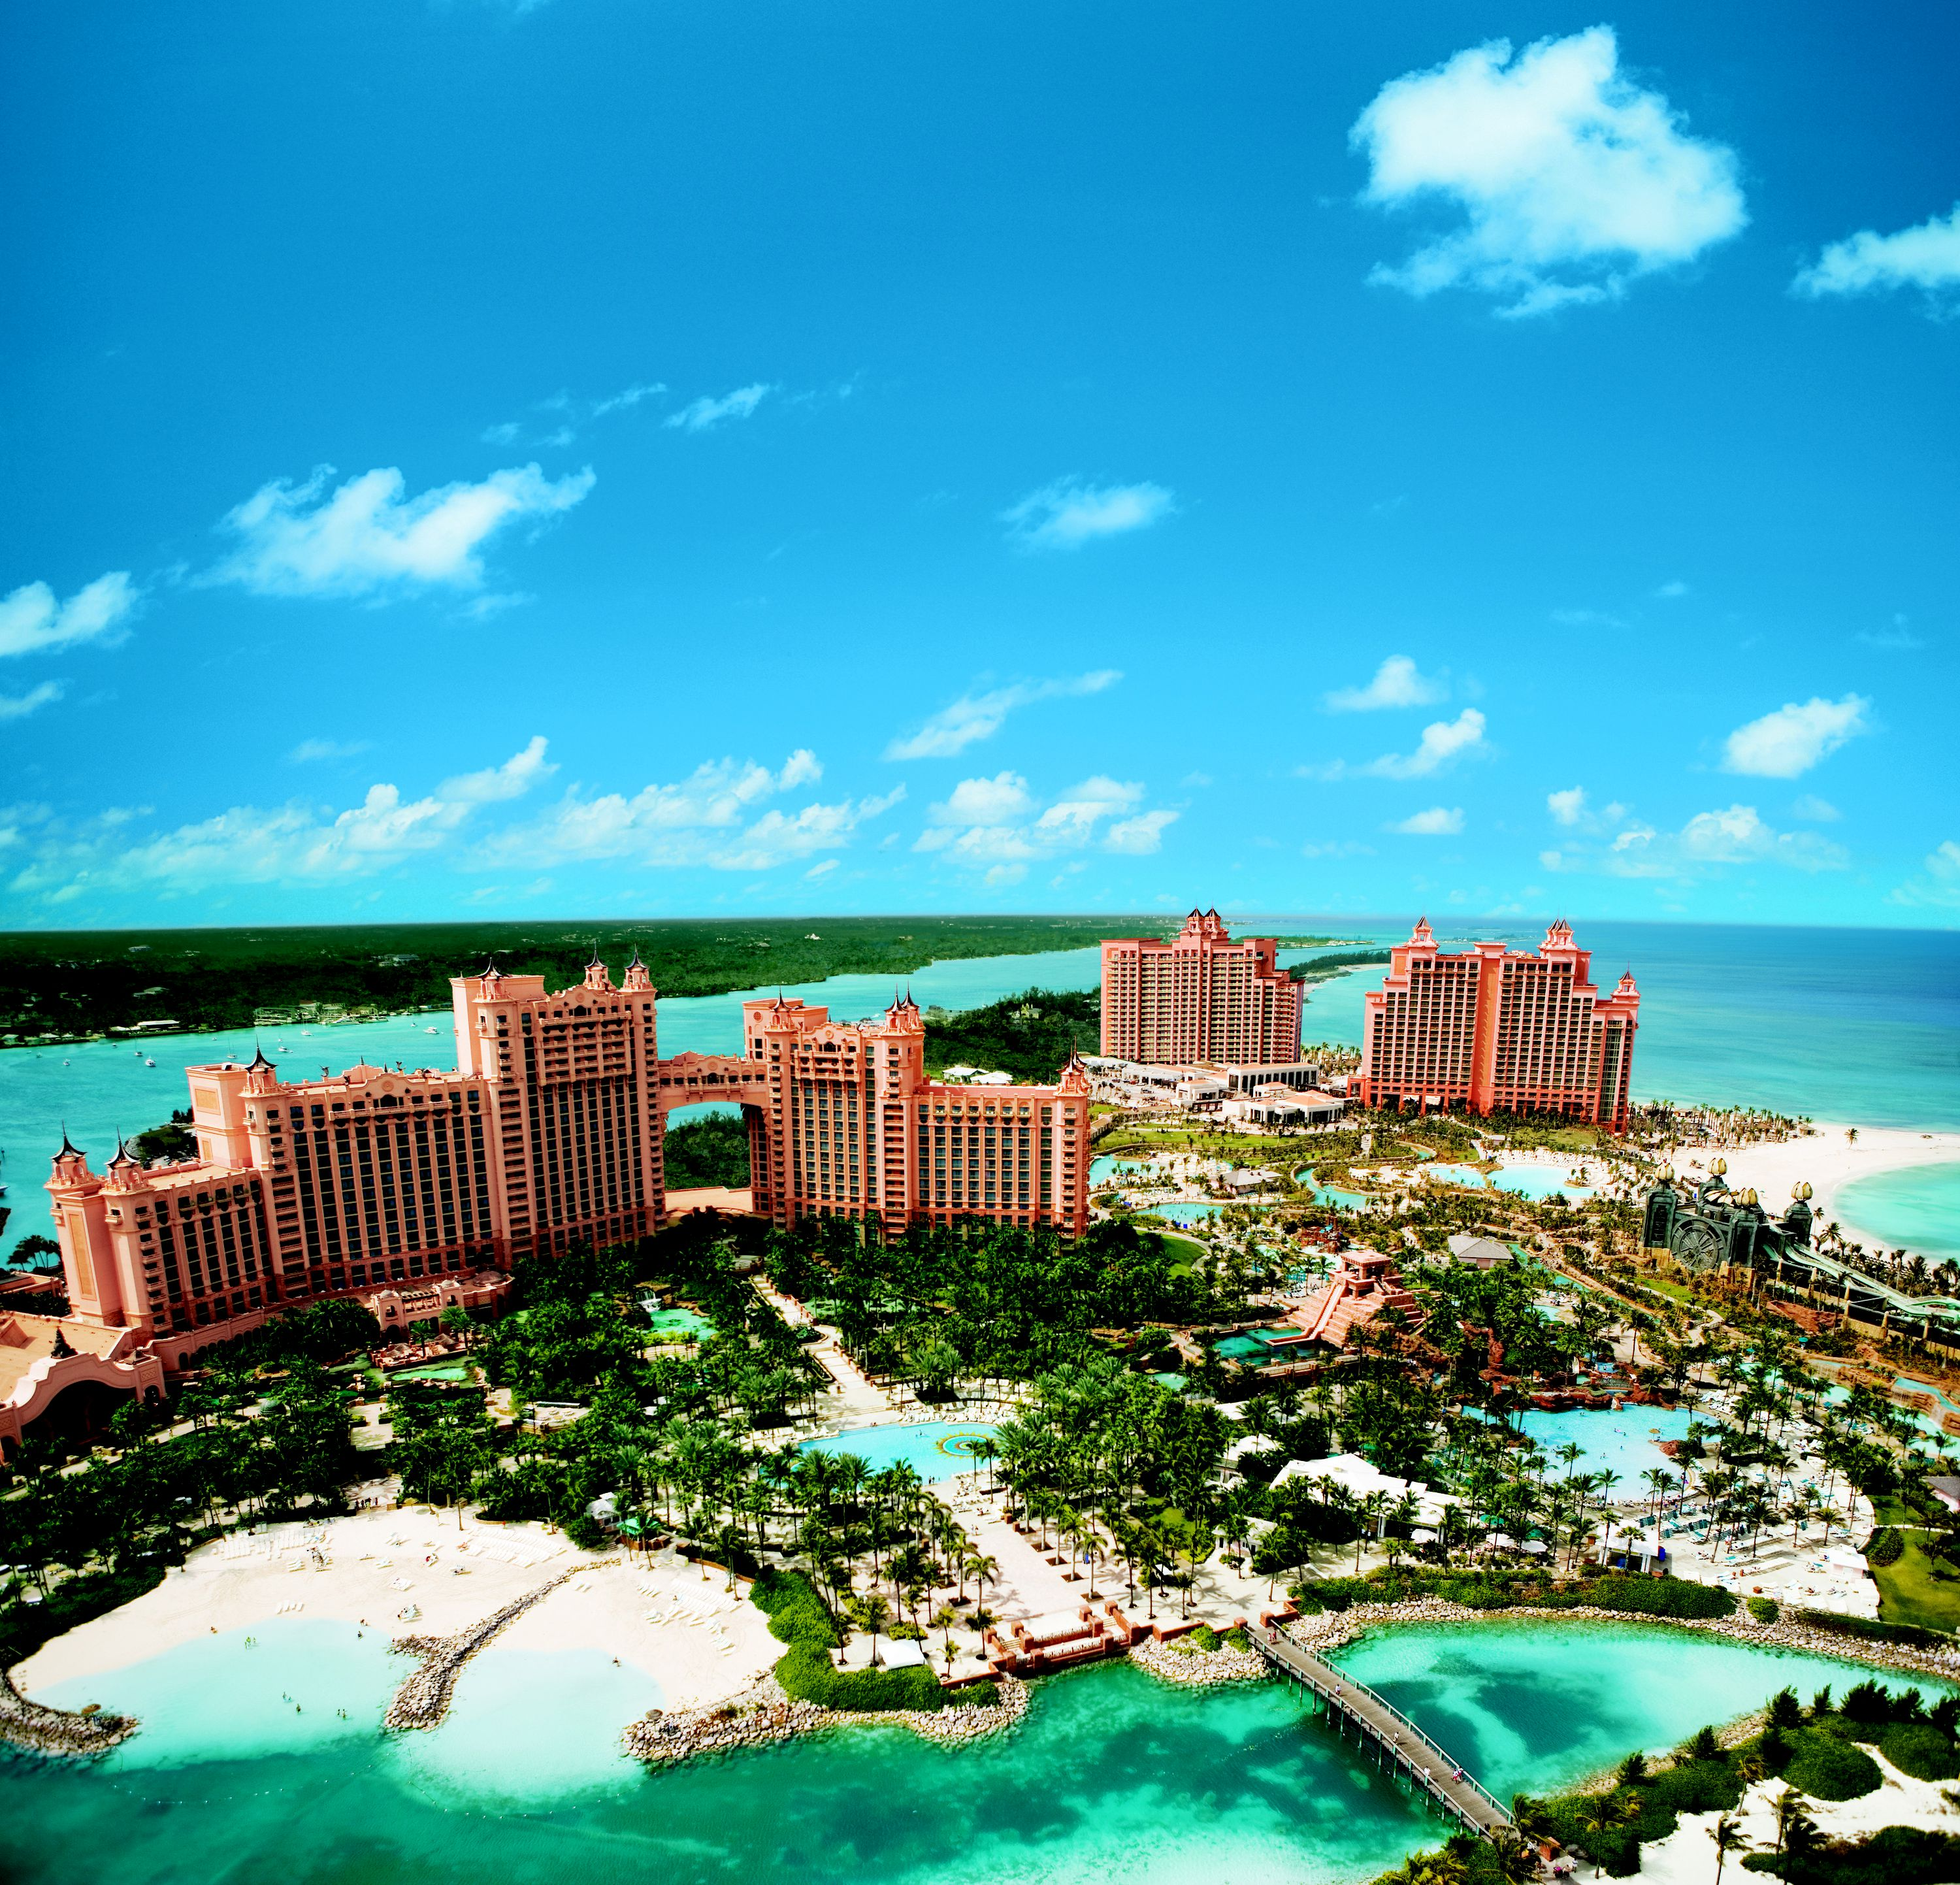 Paradise Island Bahamas Beaches: Atlantis Paradise Island Resort Introduction And Overview